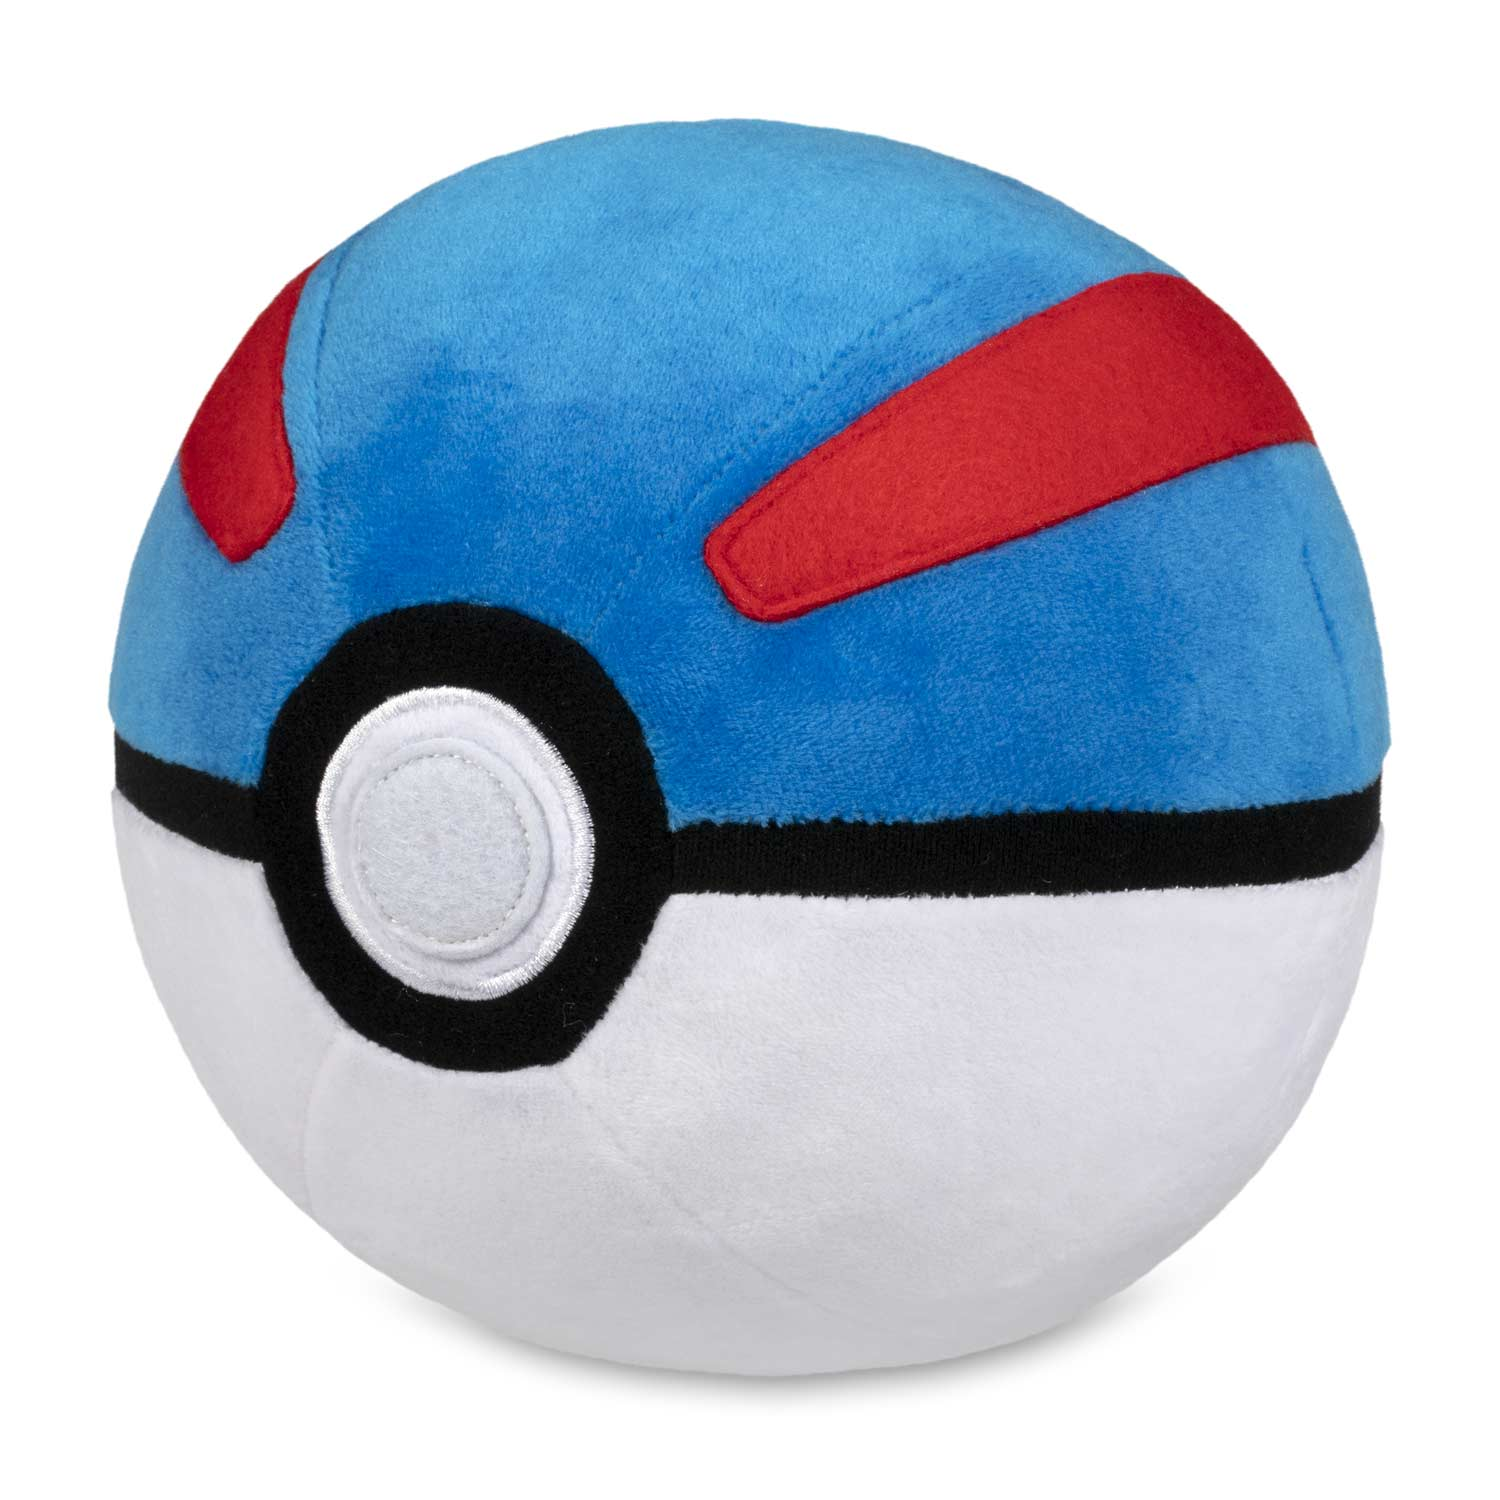 Pokemon how to change ball a pokemon is stored in